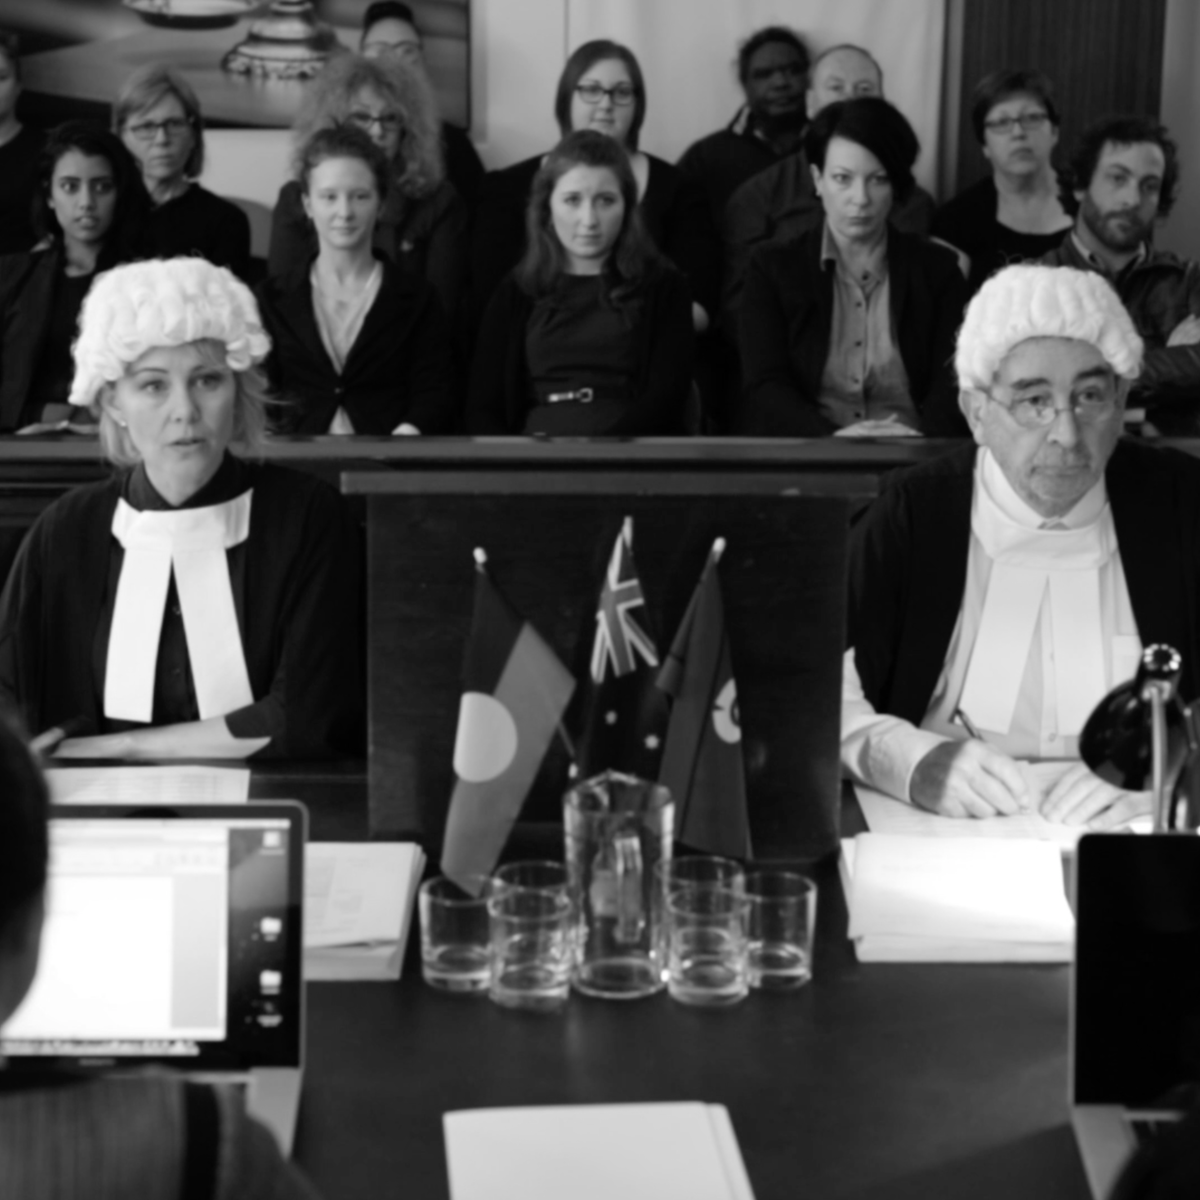 Stereotypes in the courtroom can prejudice our justice